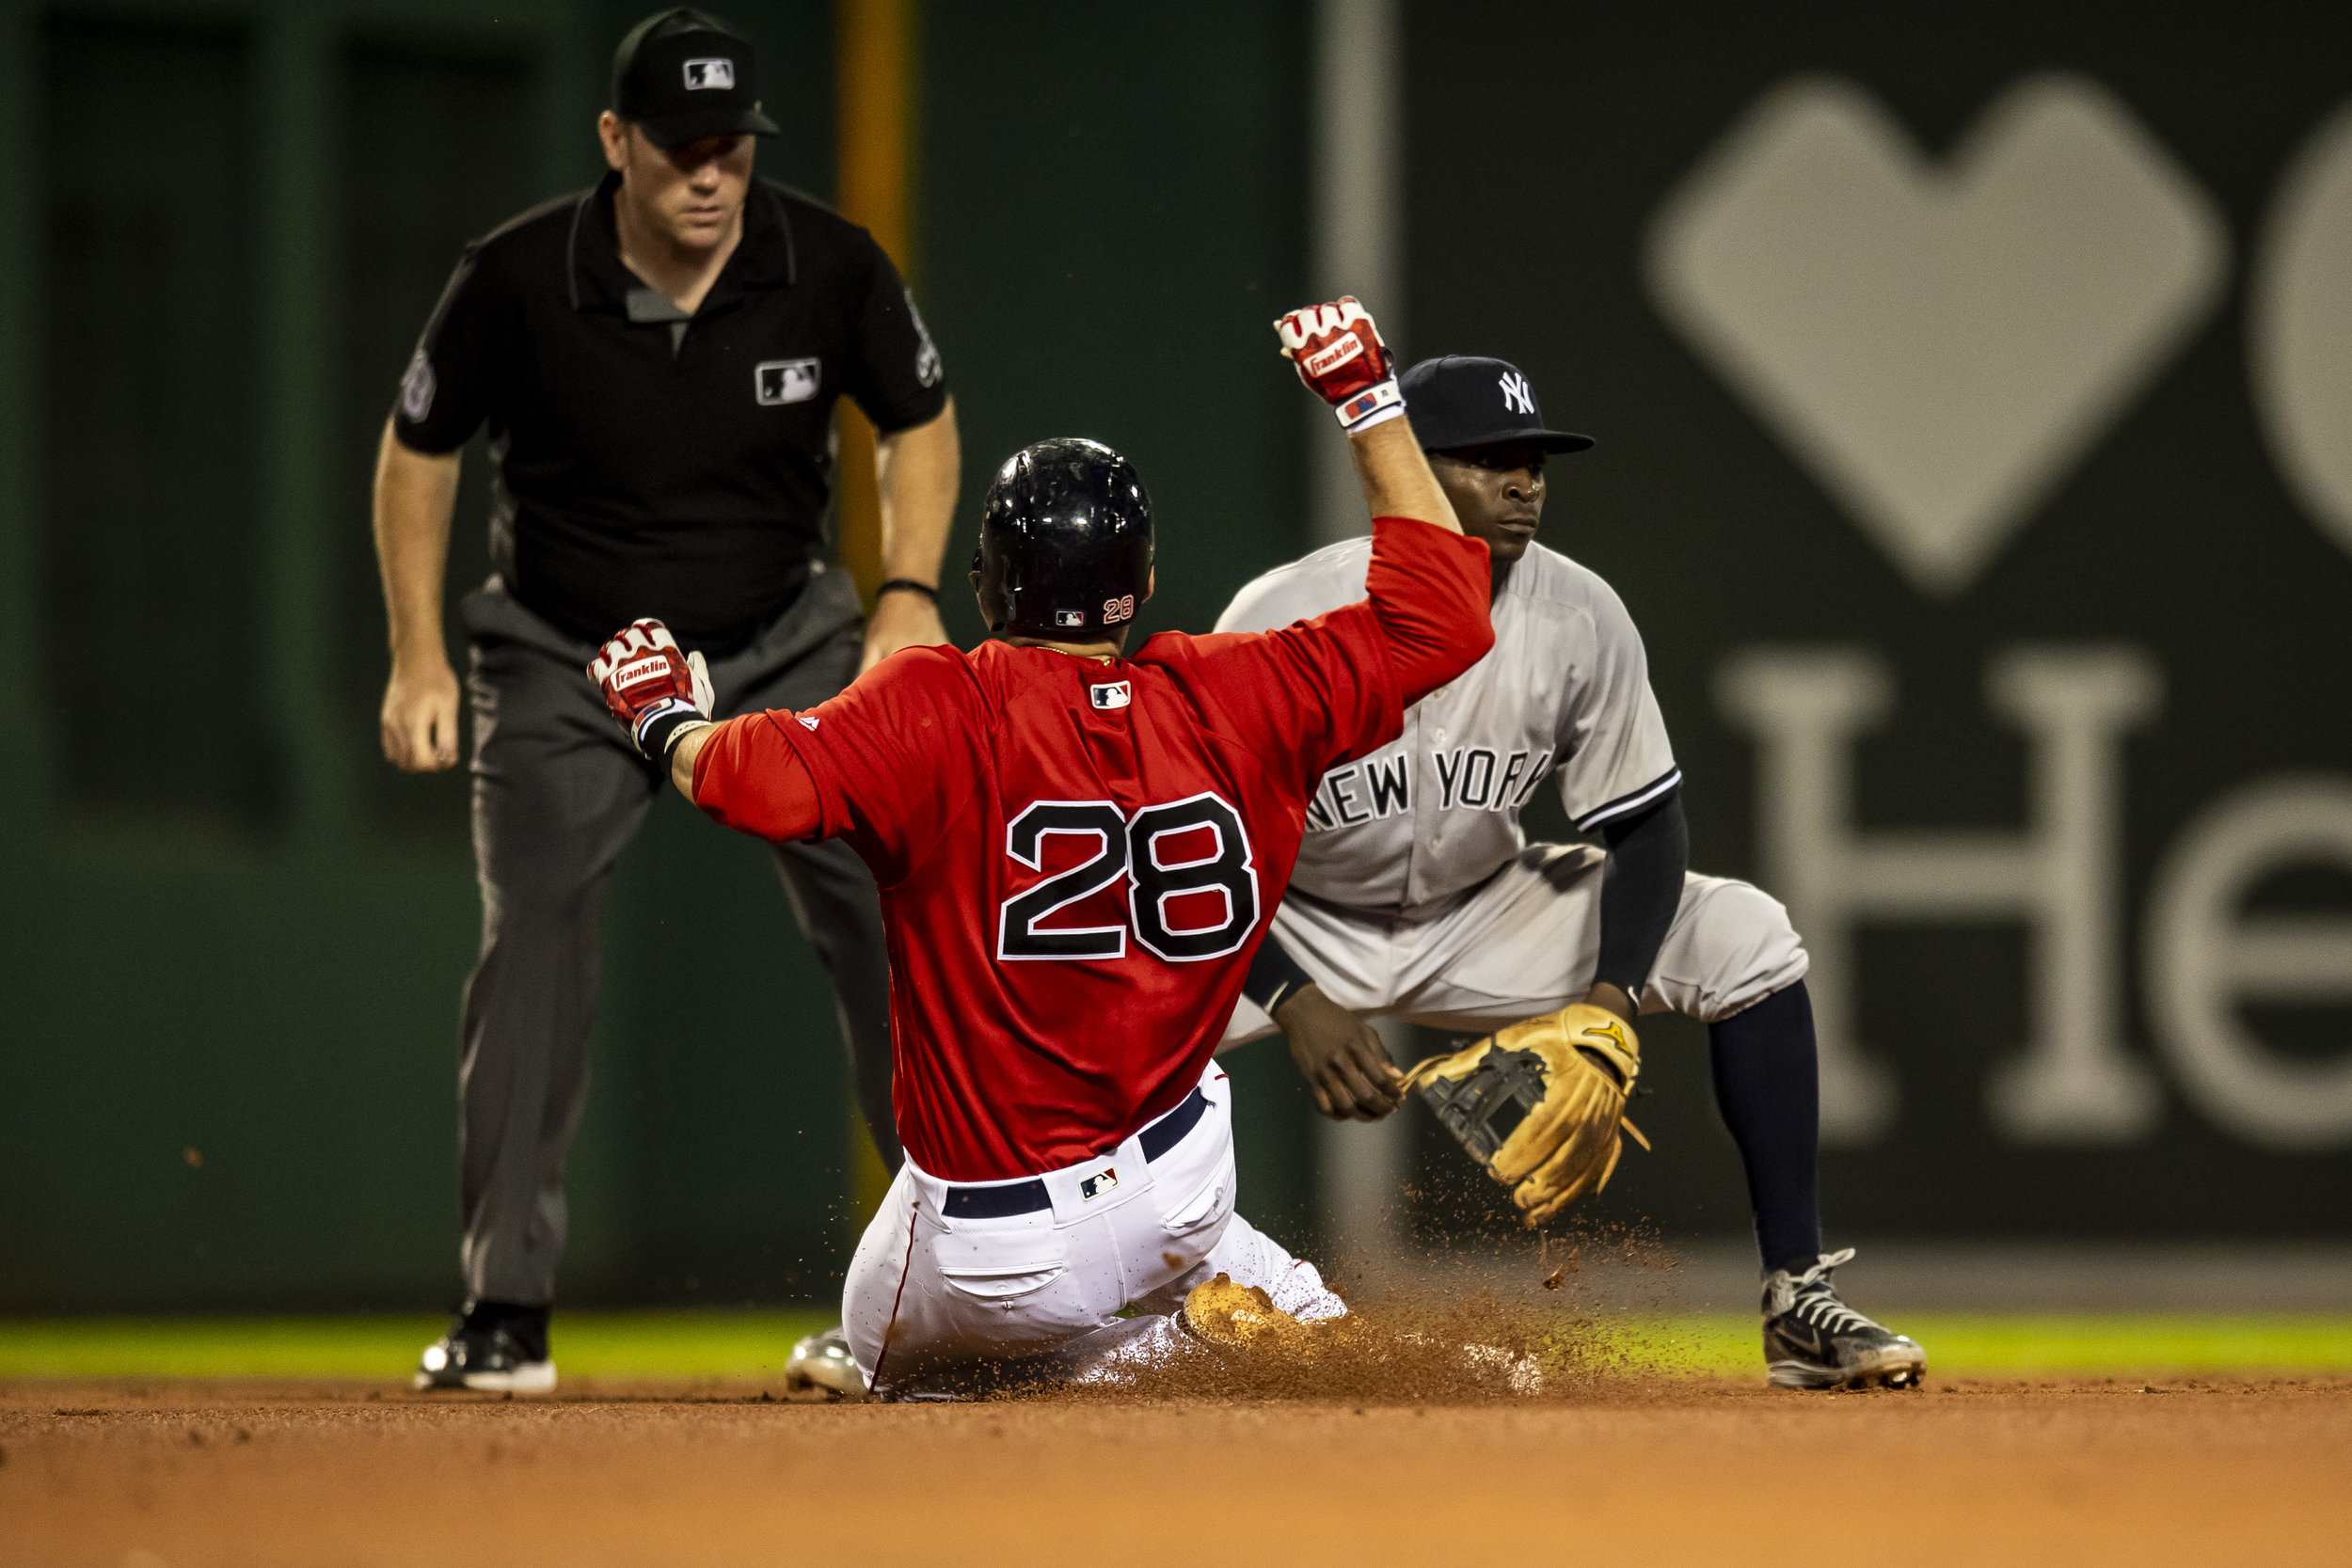 August 3, 2018, Boston, MA: Boston Red Sox outfielder J.D. Martinez  slides into second base as the Boston Red Sox face the New York Yankees at Fenway Park in Boston, Massachusetts on Friday, August 3, 2018. (Photo by Matthew Thomas/Boston Red Sox)